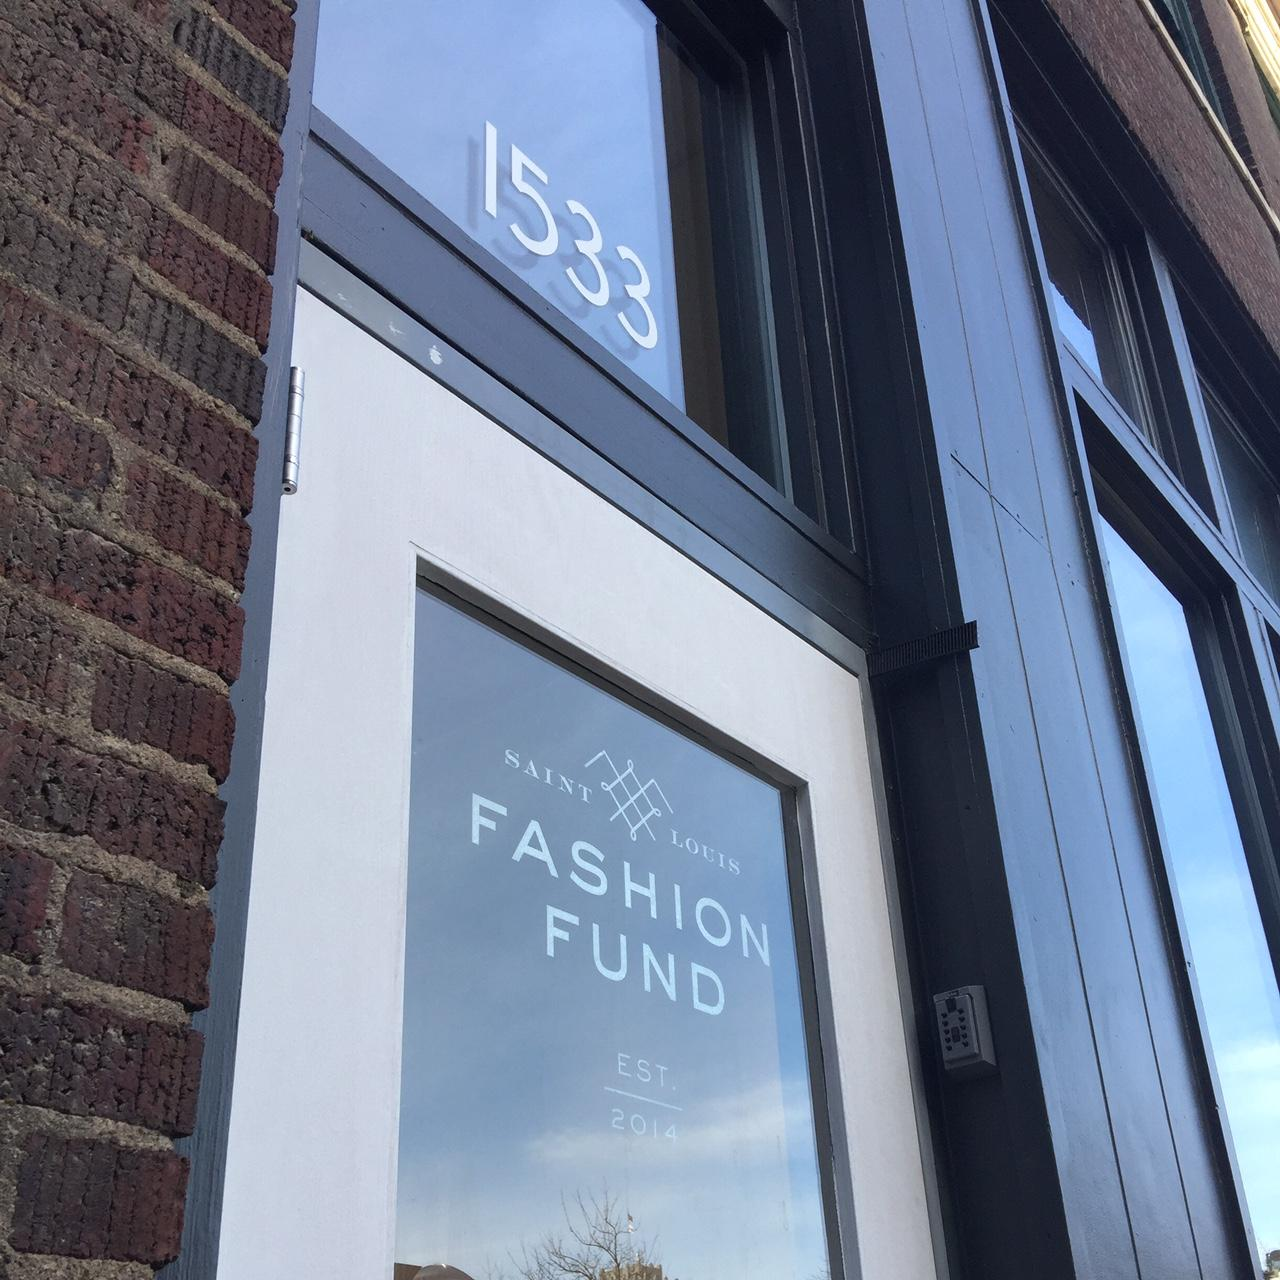 St Louis Fashion Fund Redesigns Strategy To Promote Local Industry